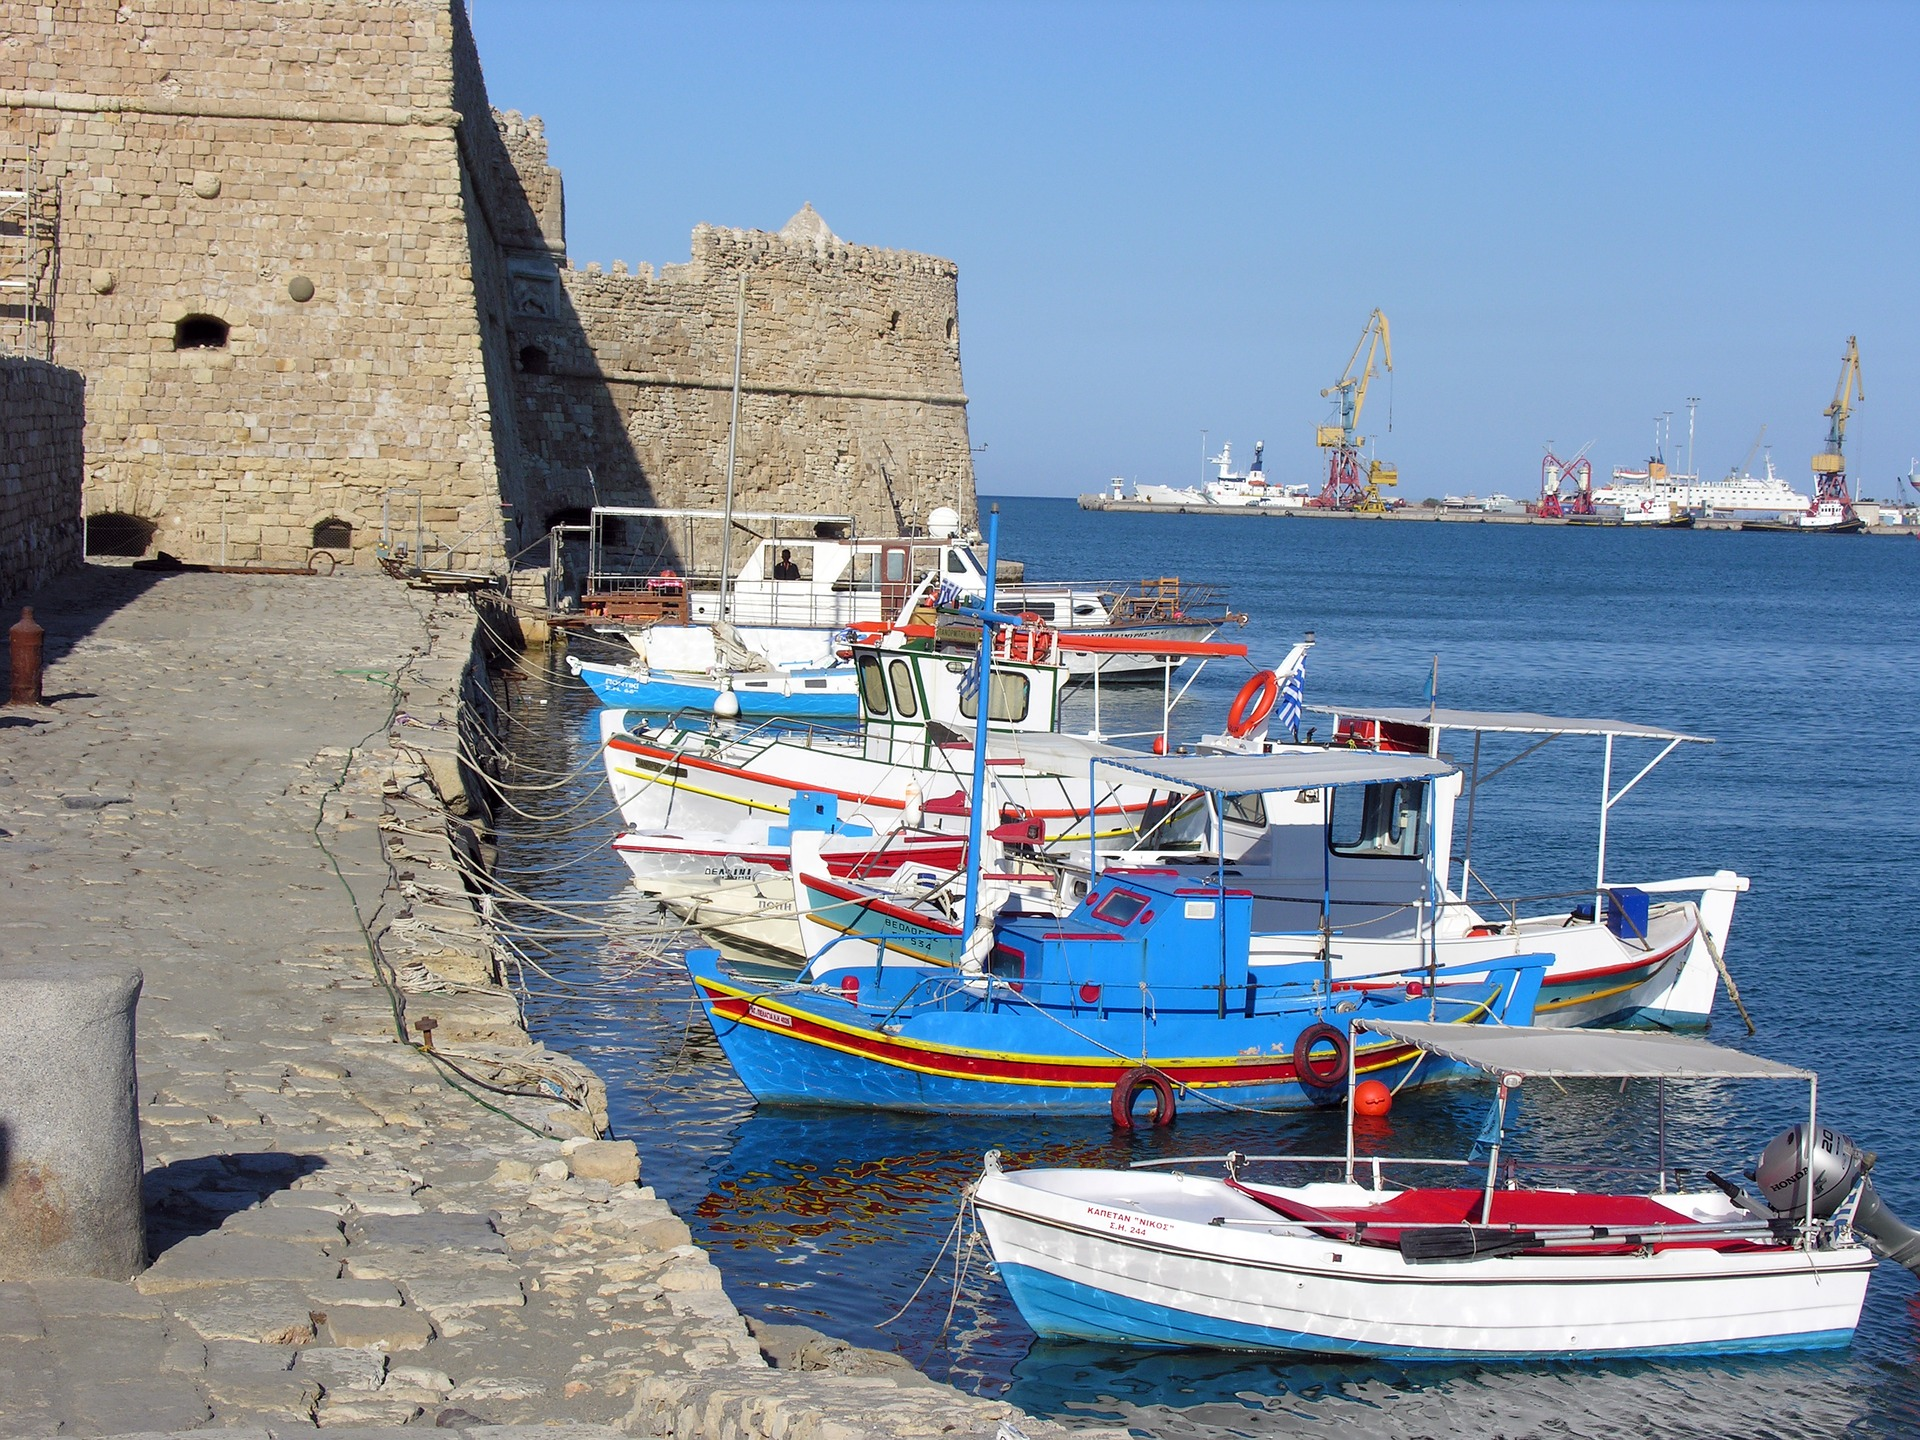 Sightseeing in Heraklion of Crete